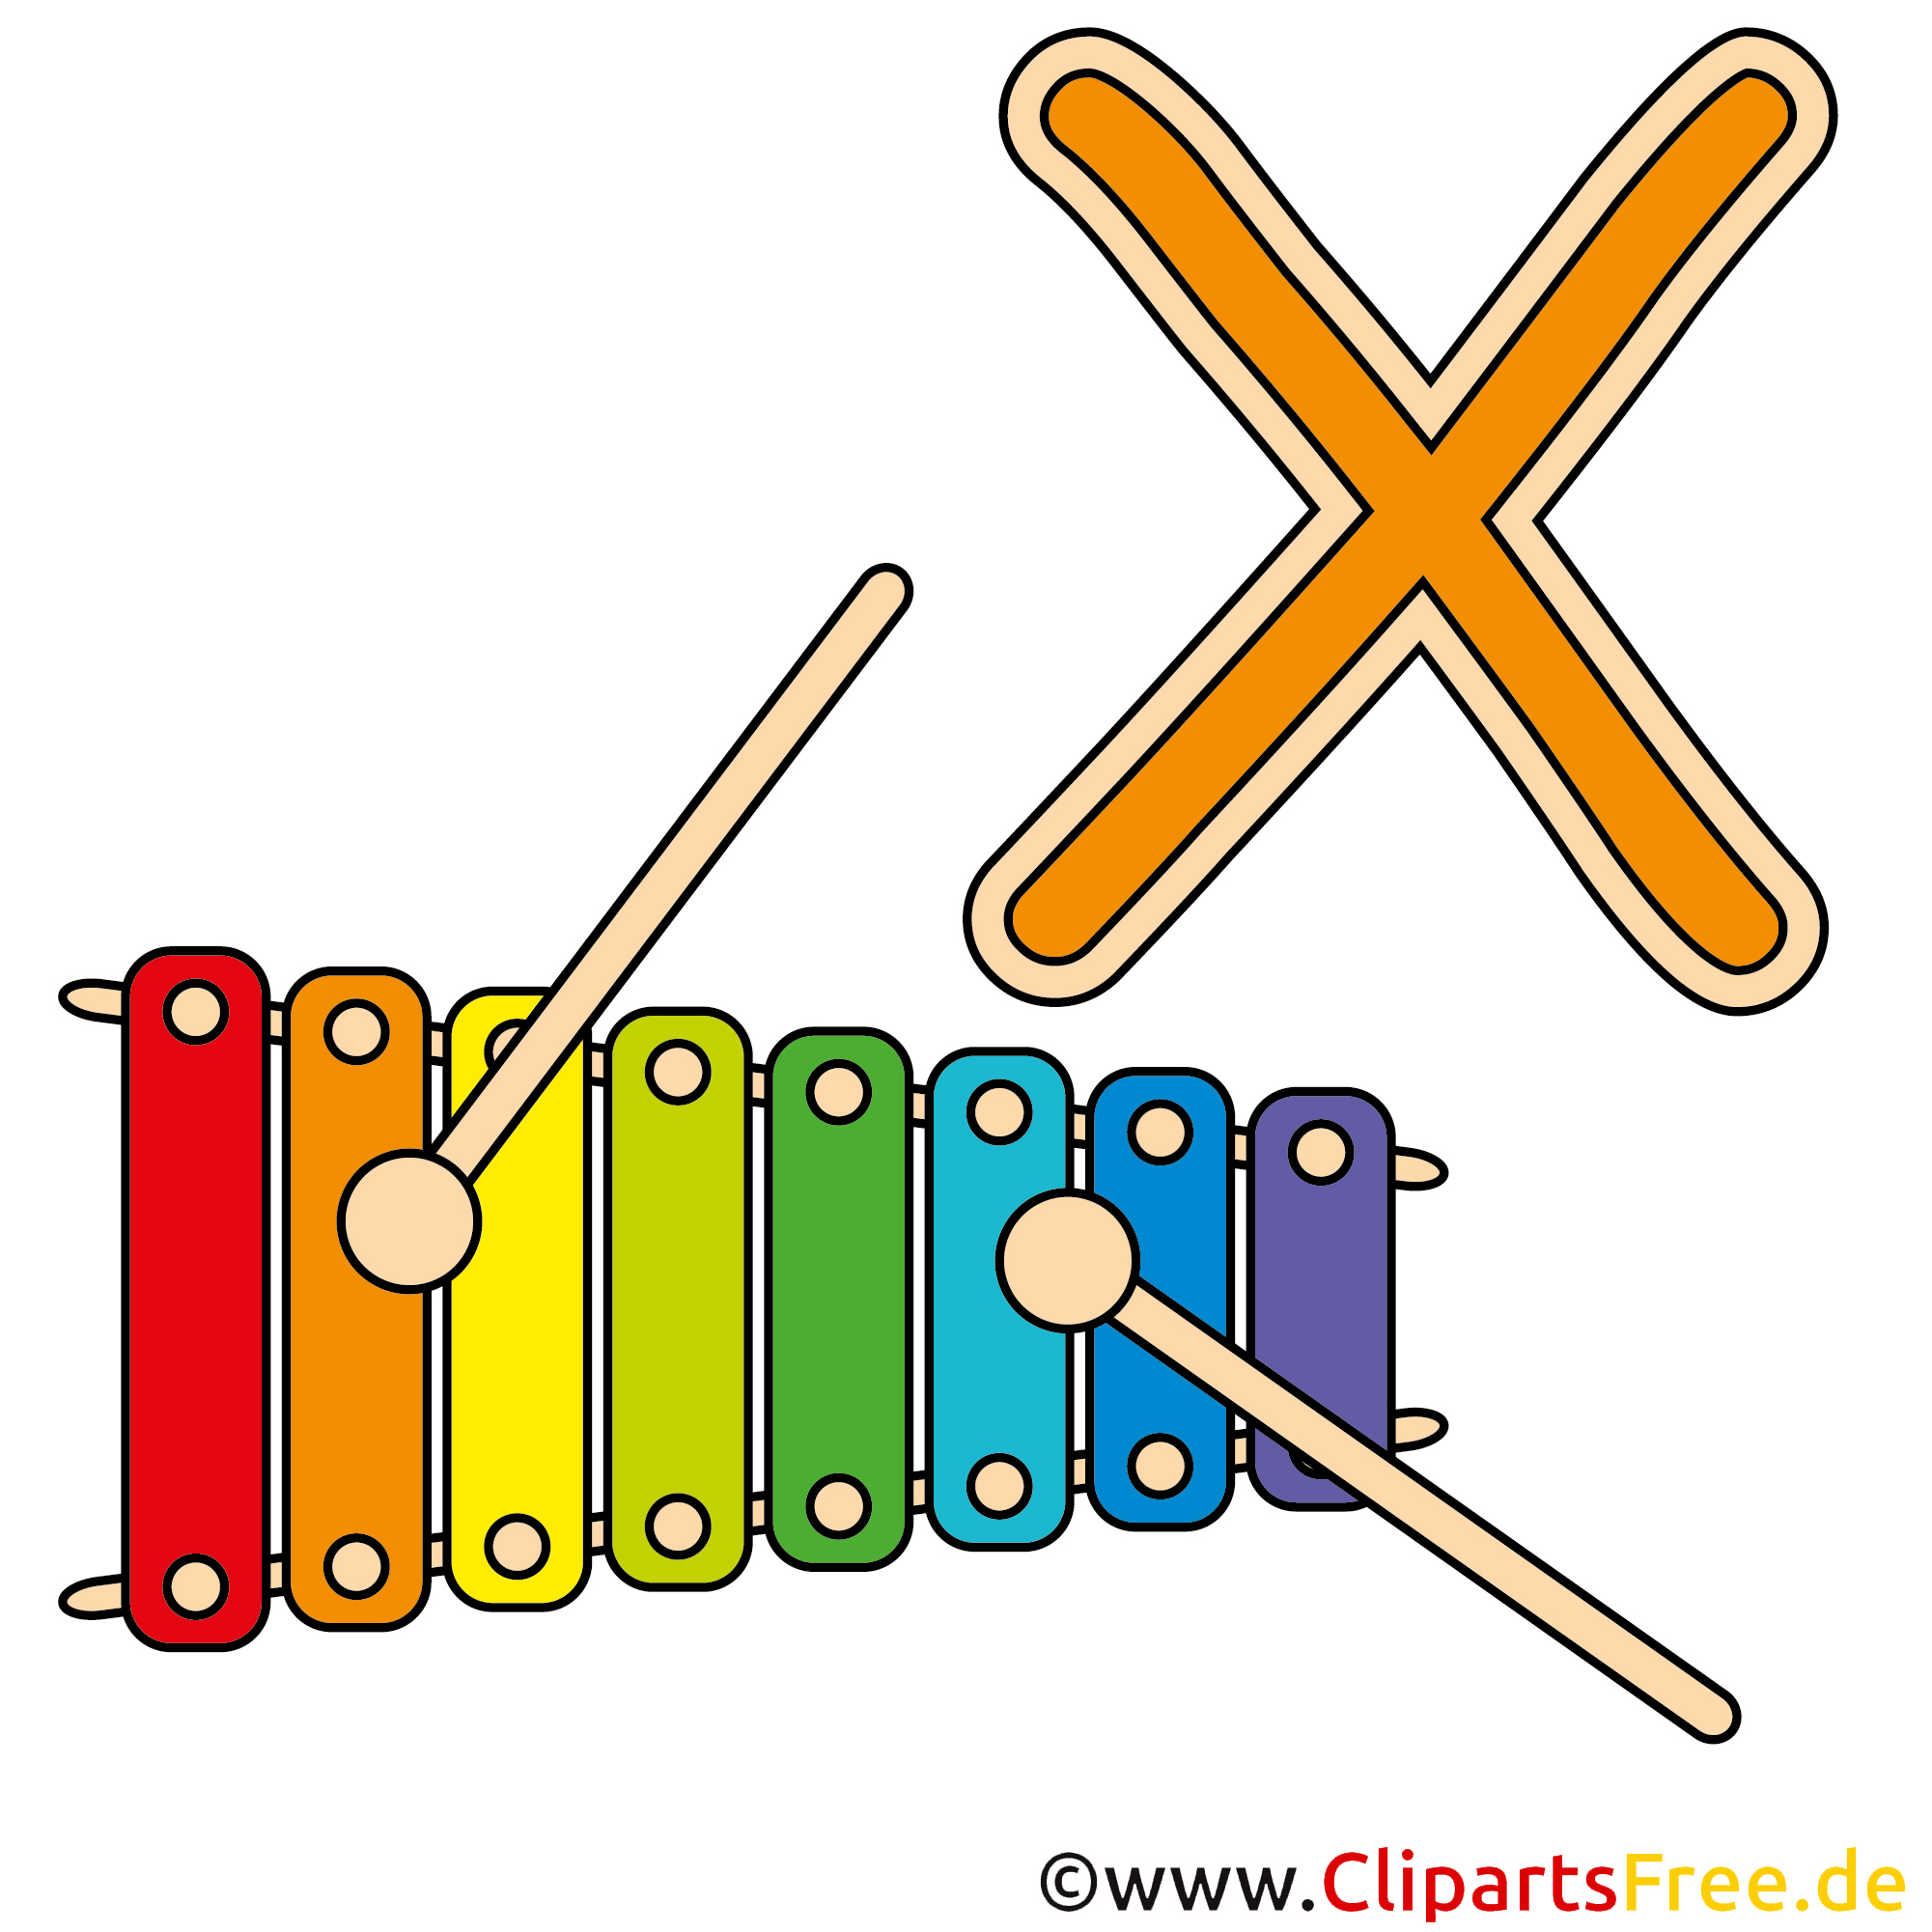 clipart xylophone - photo #22